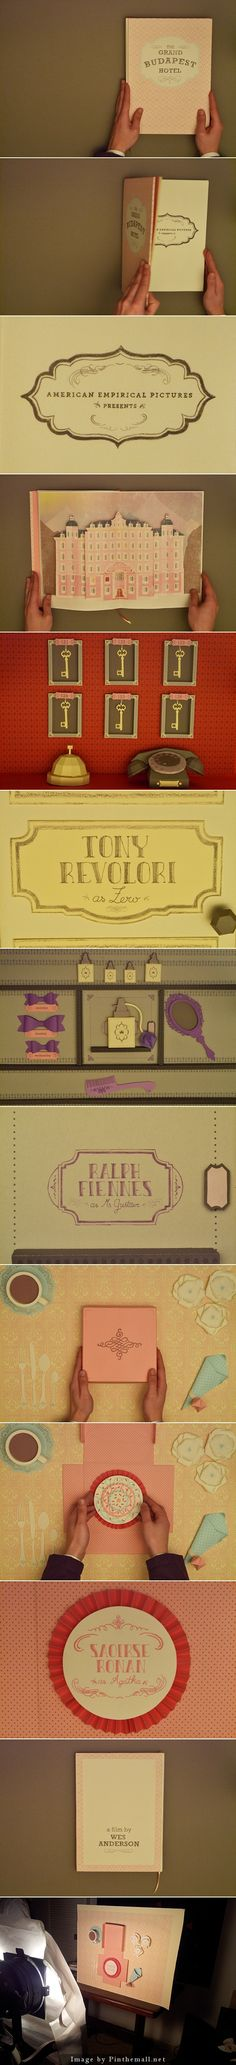 The Grand Budapest Hotel by Sabrina Giselle Acevedo -- loved the visuals in this film. This is also gorgeous! Wes Anderson Movies, The Royal Tenenbaums, Grand Budapest Hotel, Moonrise Kingdom, Film Stills, Film Director, Filmmaking, Branding, My Favorite Things